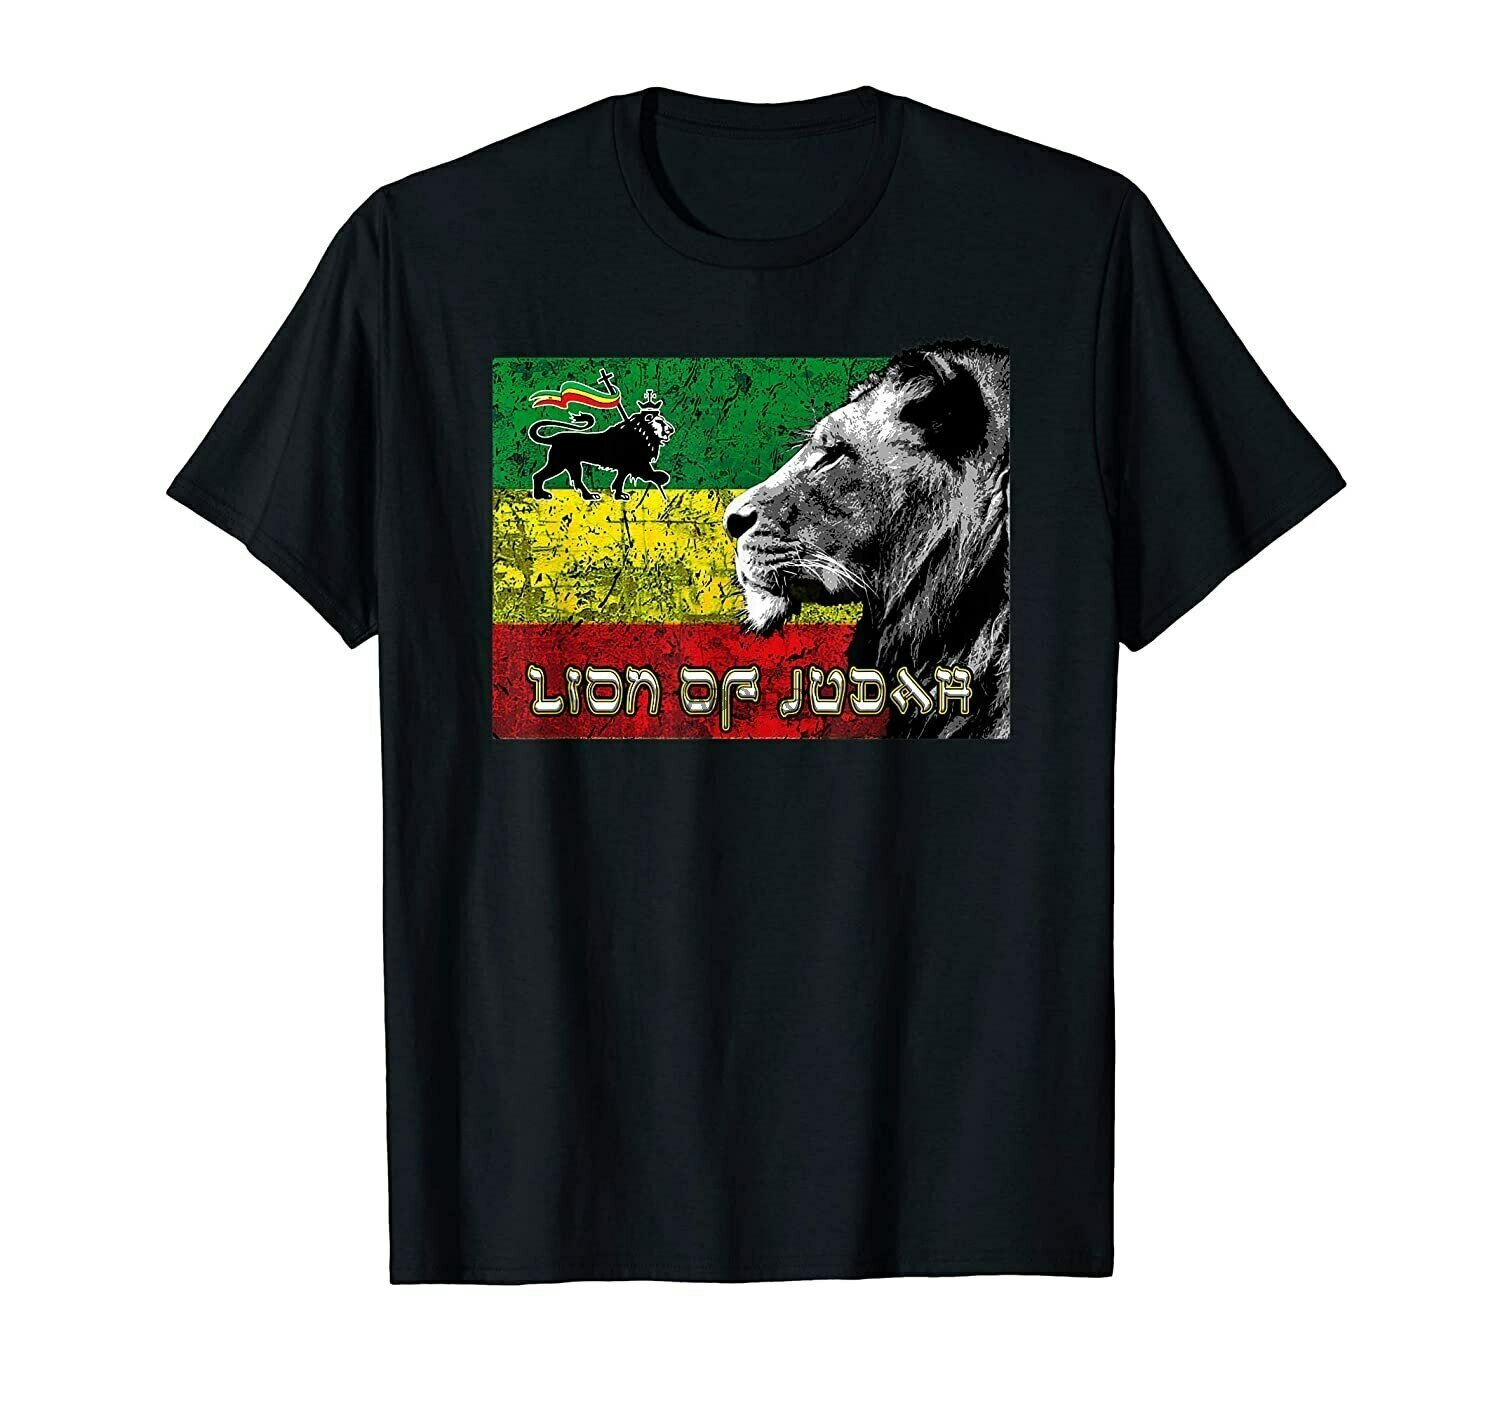 Lion Of Judah Ethiopian Hebrew Israelite Tribe Rasta Shirt T-Shirt